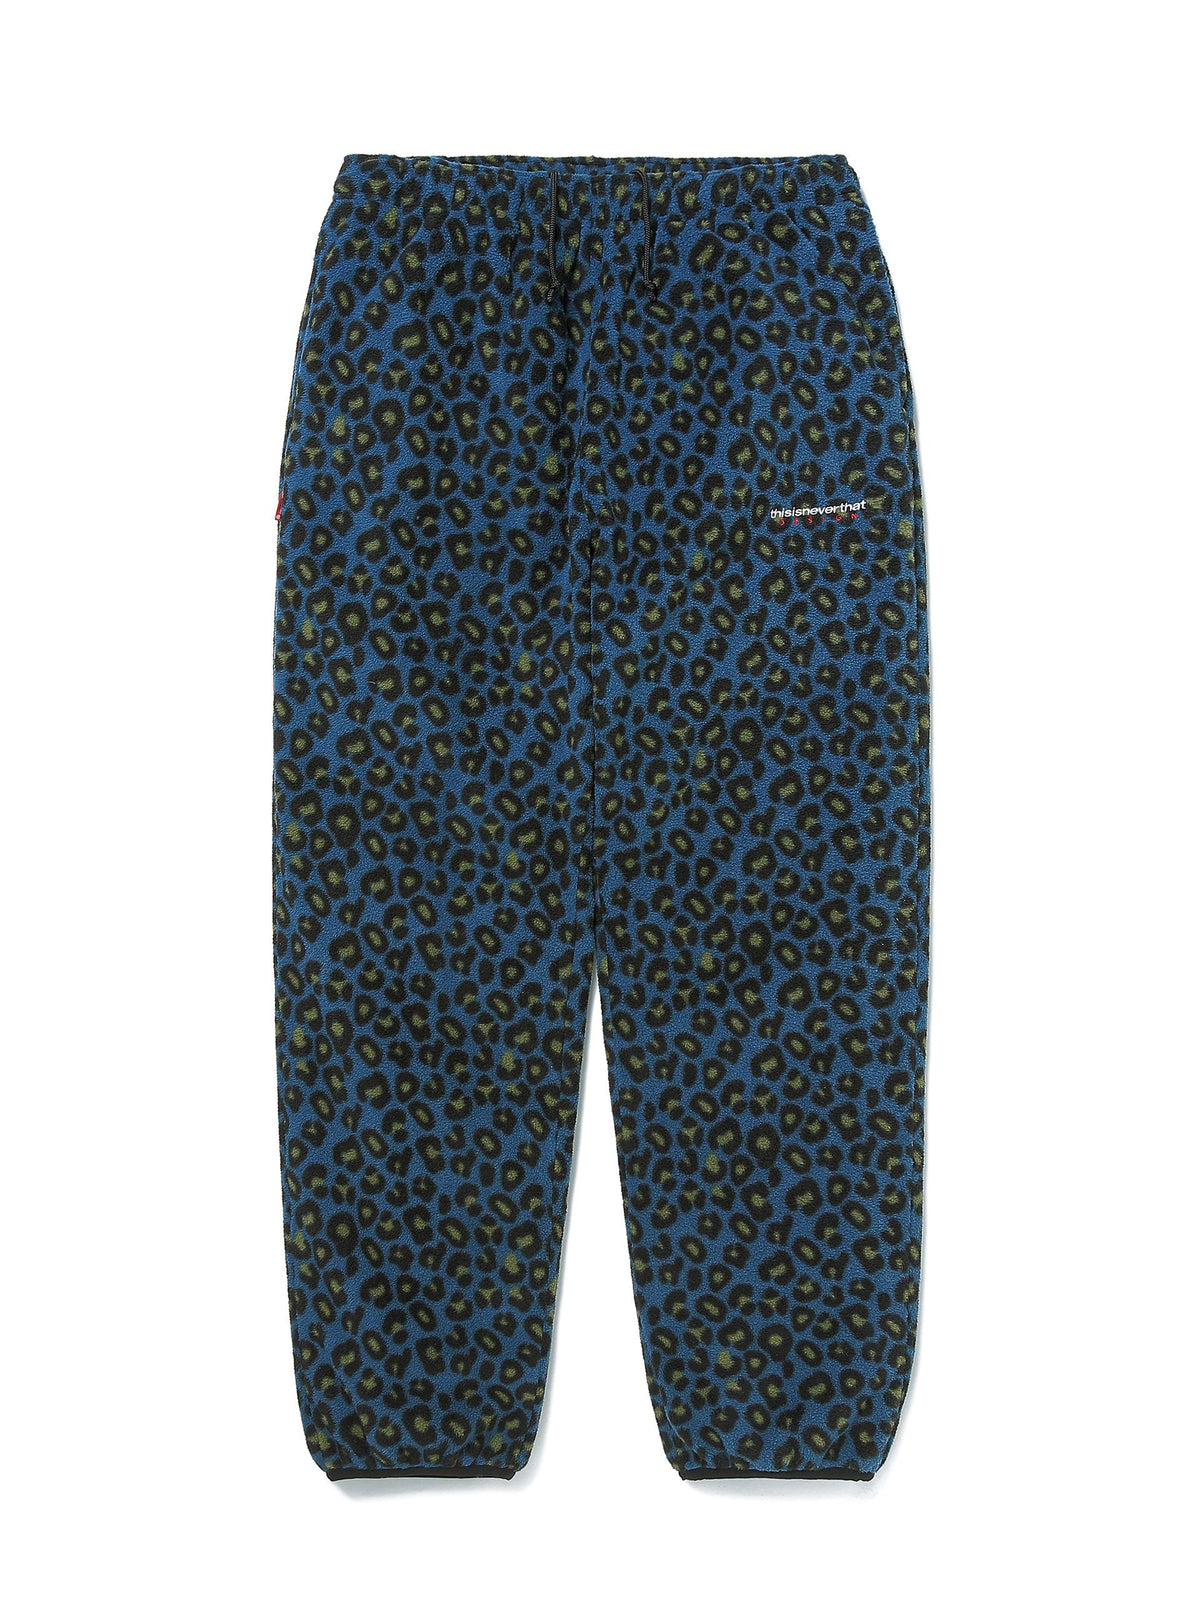 DSN Fleece Pant - thisisneverthat